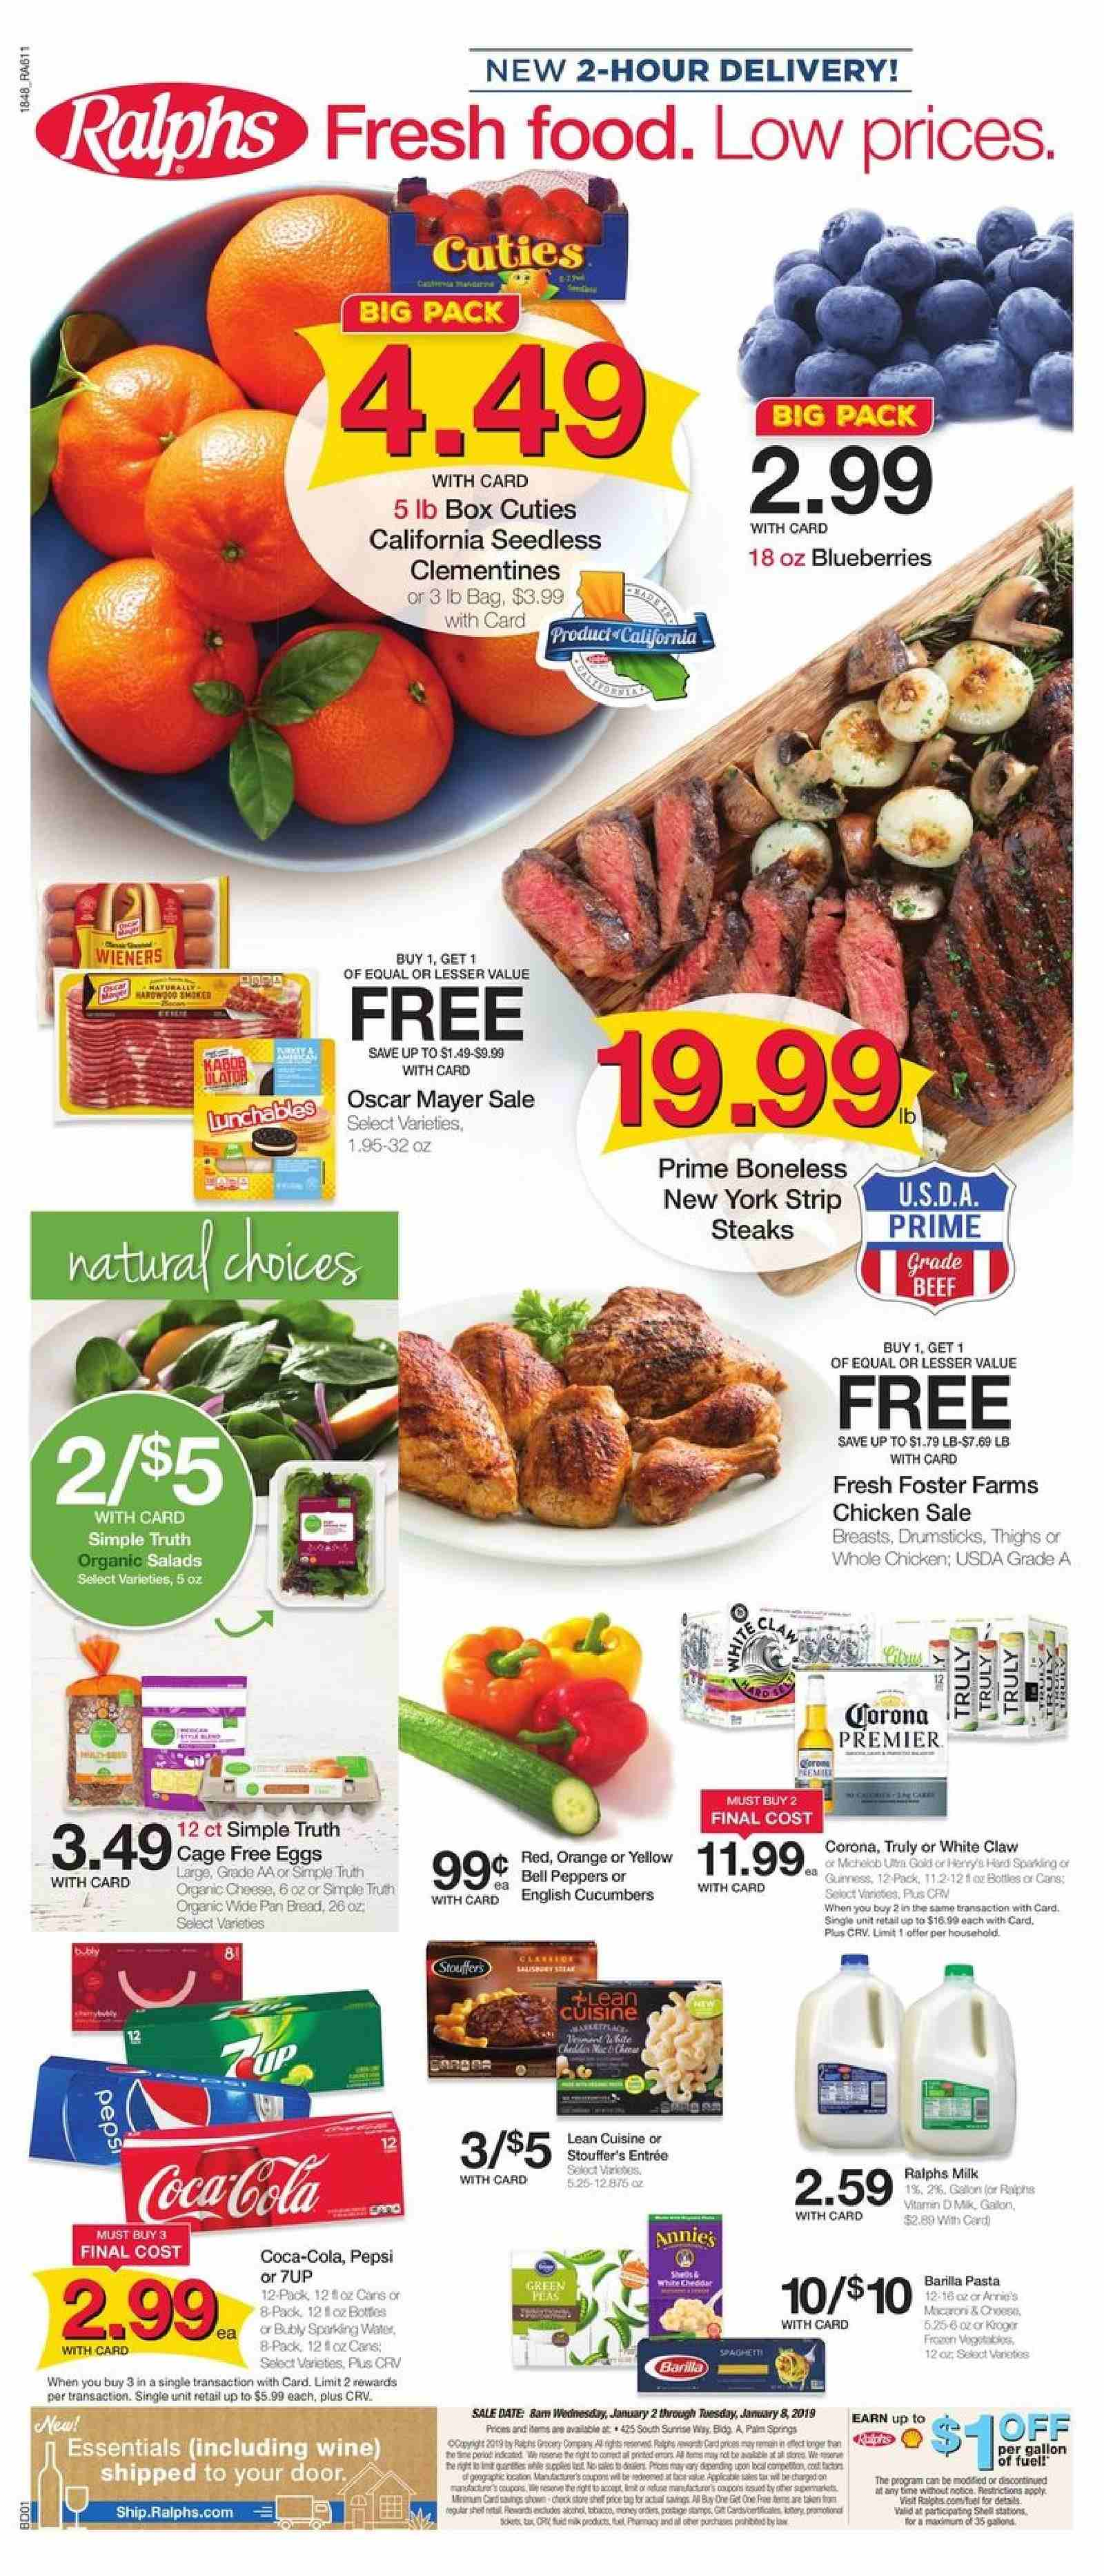 Ralphs Flyer  - 01.02.2019 - 01.08.2019. Page 1.